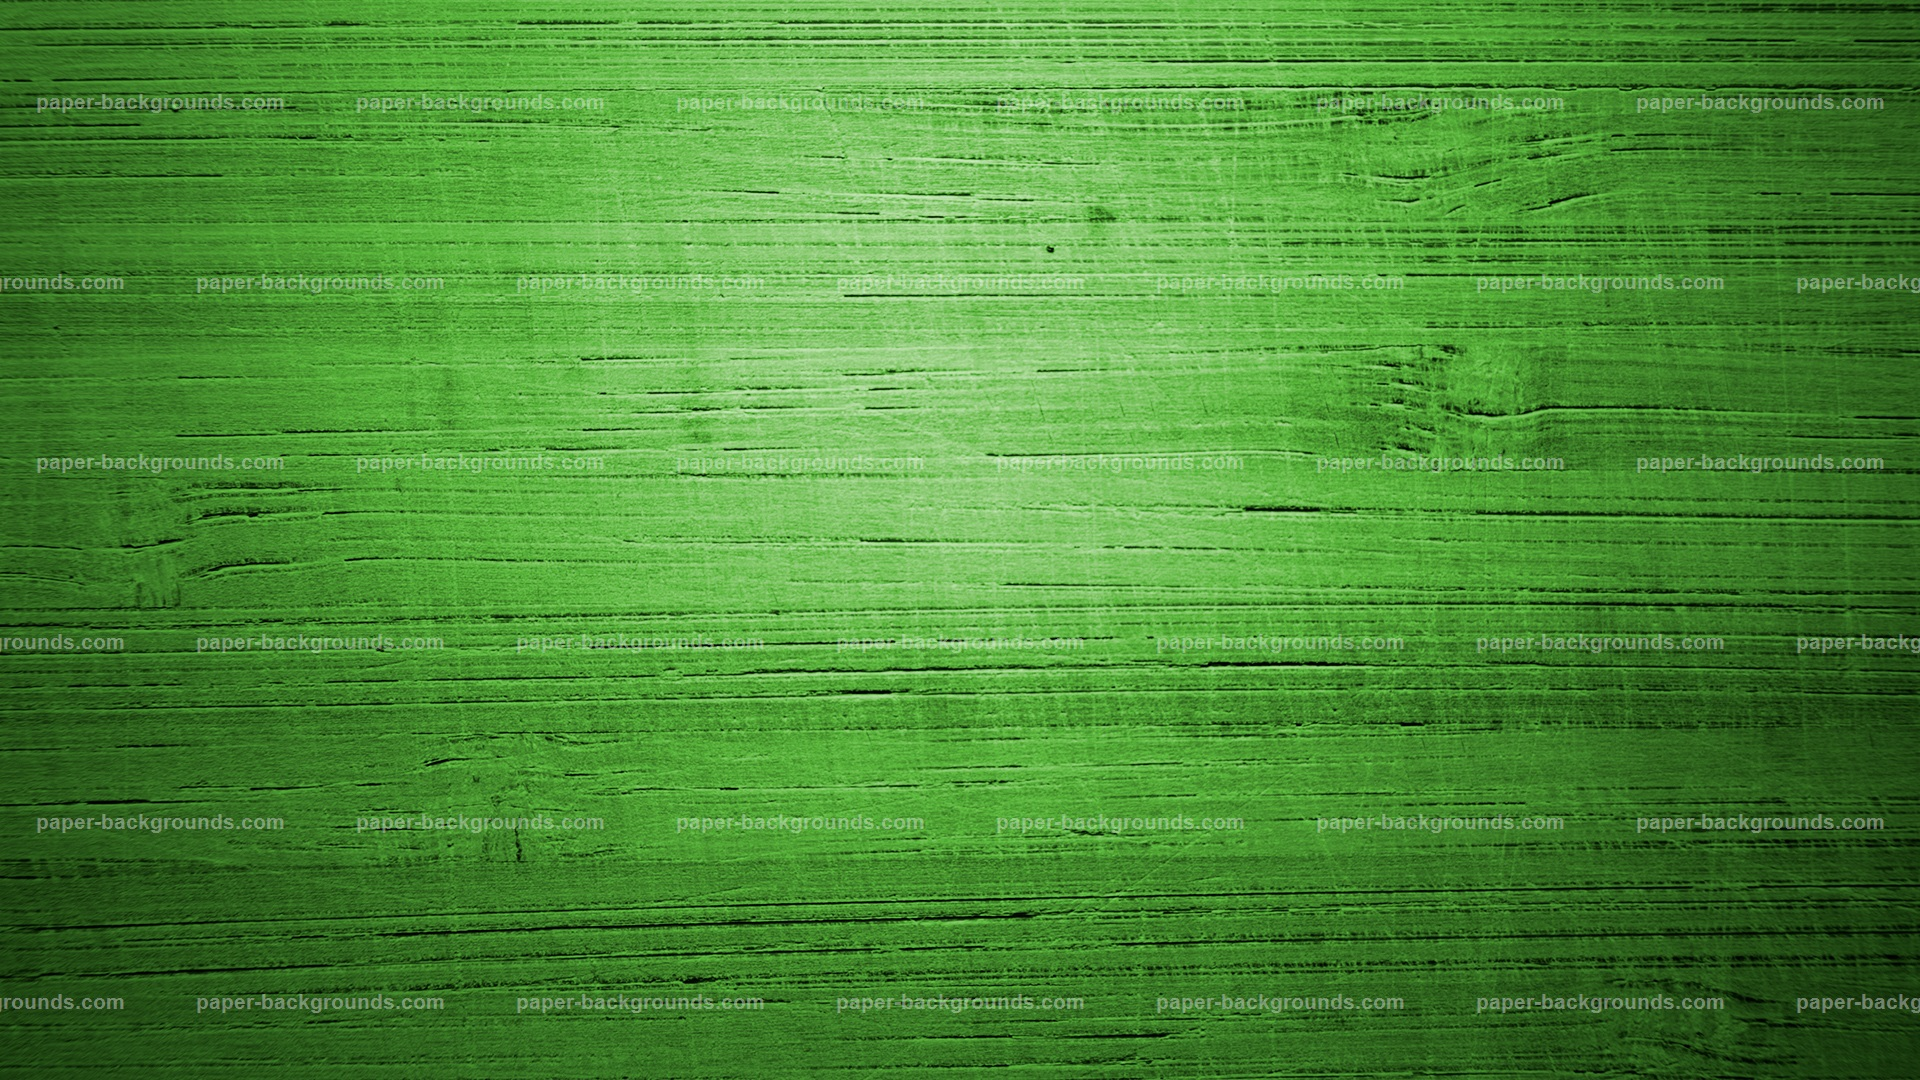 Paper Backgrounds | Green Wood Texture Background HD